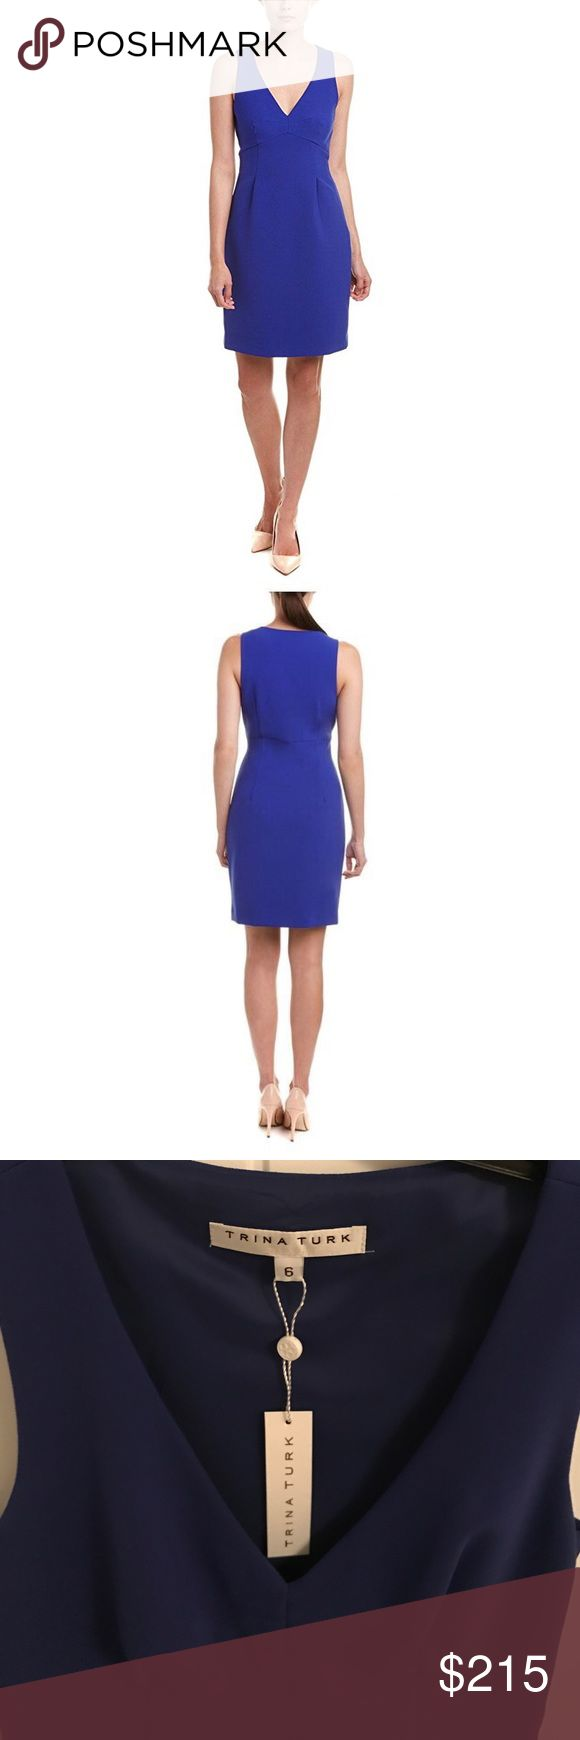 Newest Listing 💙 Trina Turk Dress Trina Turk Dress | Never Worn | Size 6                                                            Precise seaming and darting sculpt the V-neck bodice of a double-woven sheath dress with flattering stretch. Side zip closure. Fully lined. 63% polyester, 27% viscose, 7% cotton, 3% elastane. Trina Turk Dresses